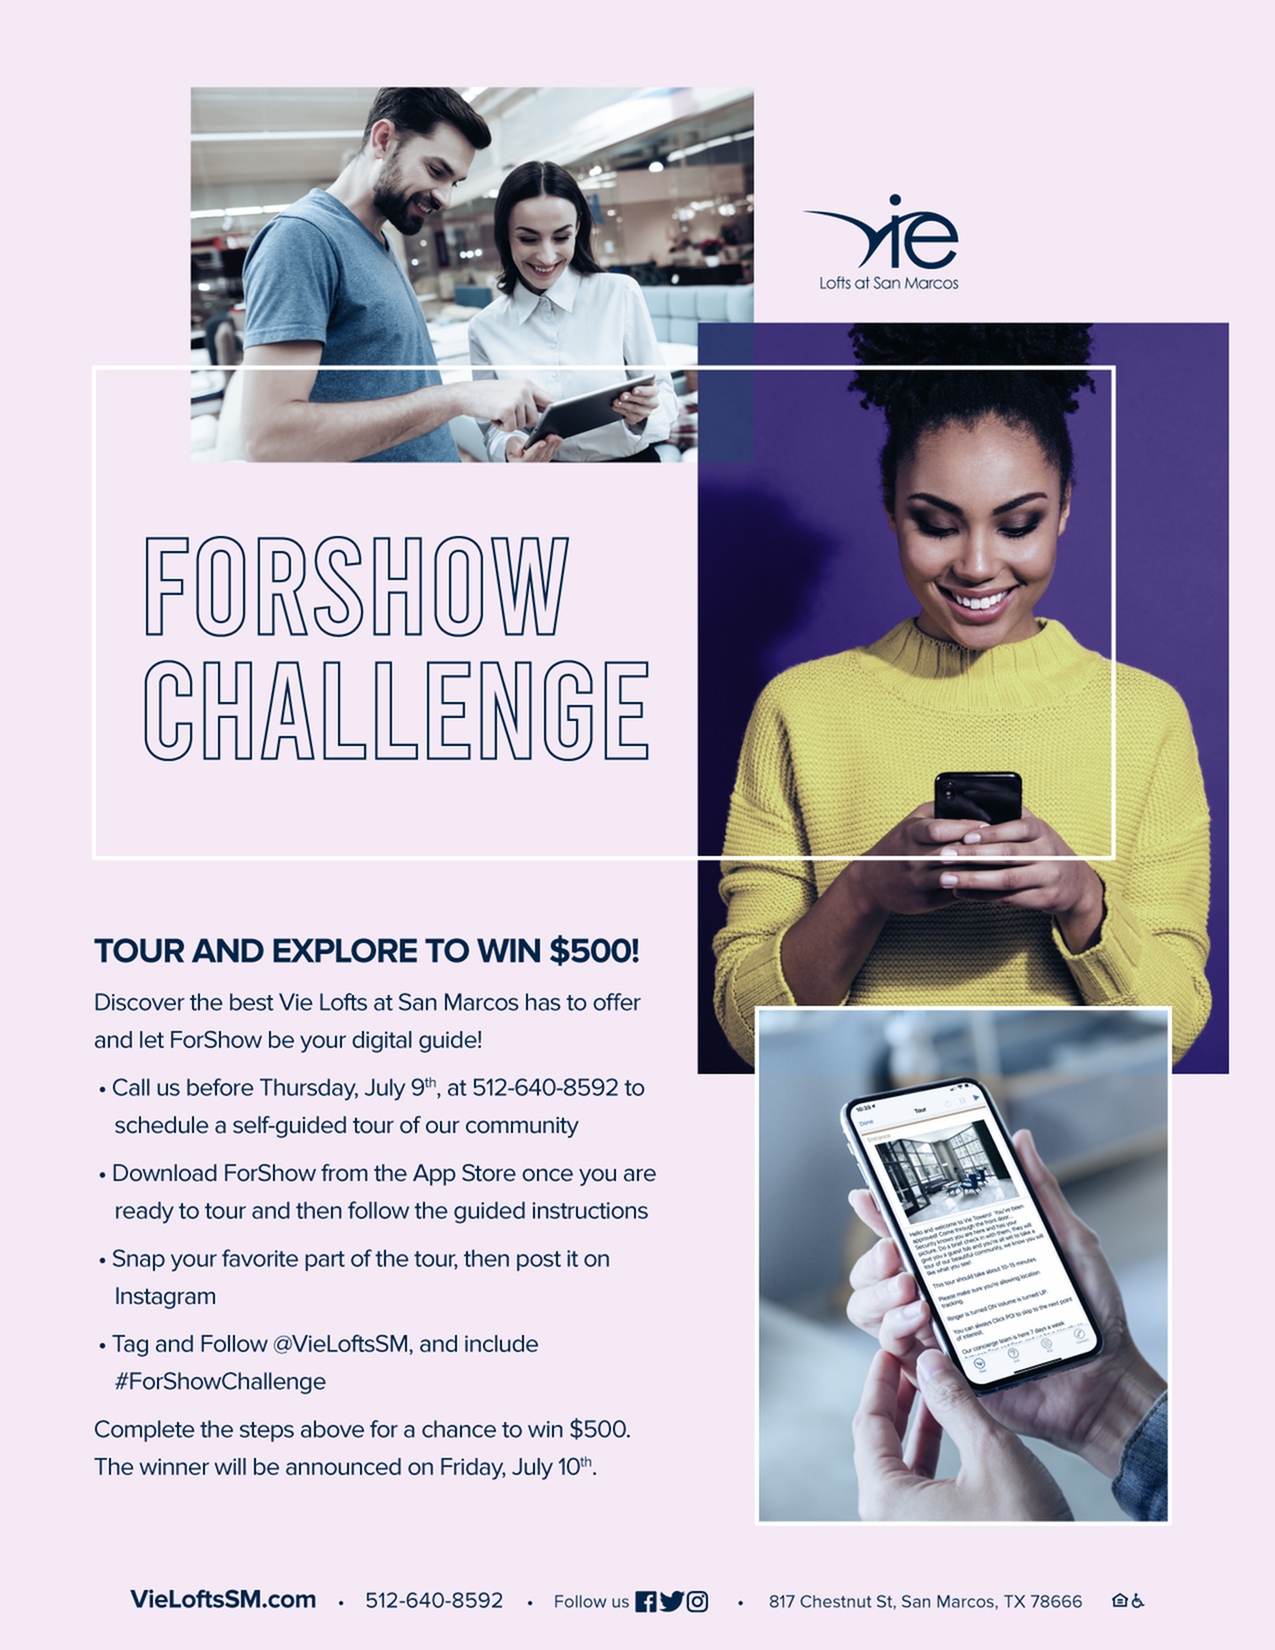 ForShow Challenge | Tour & Explore to Win $500-image